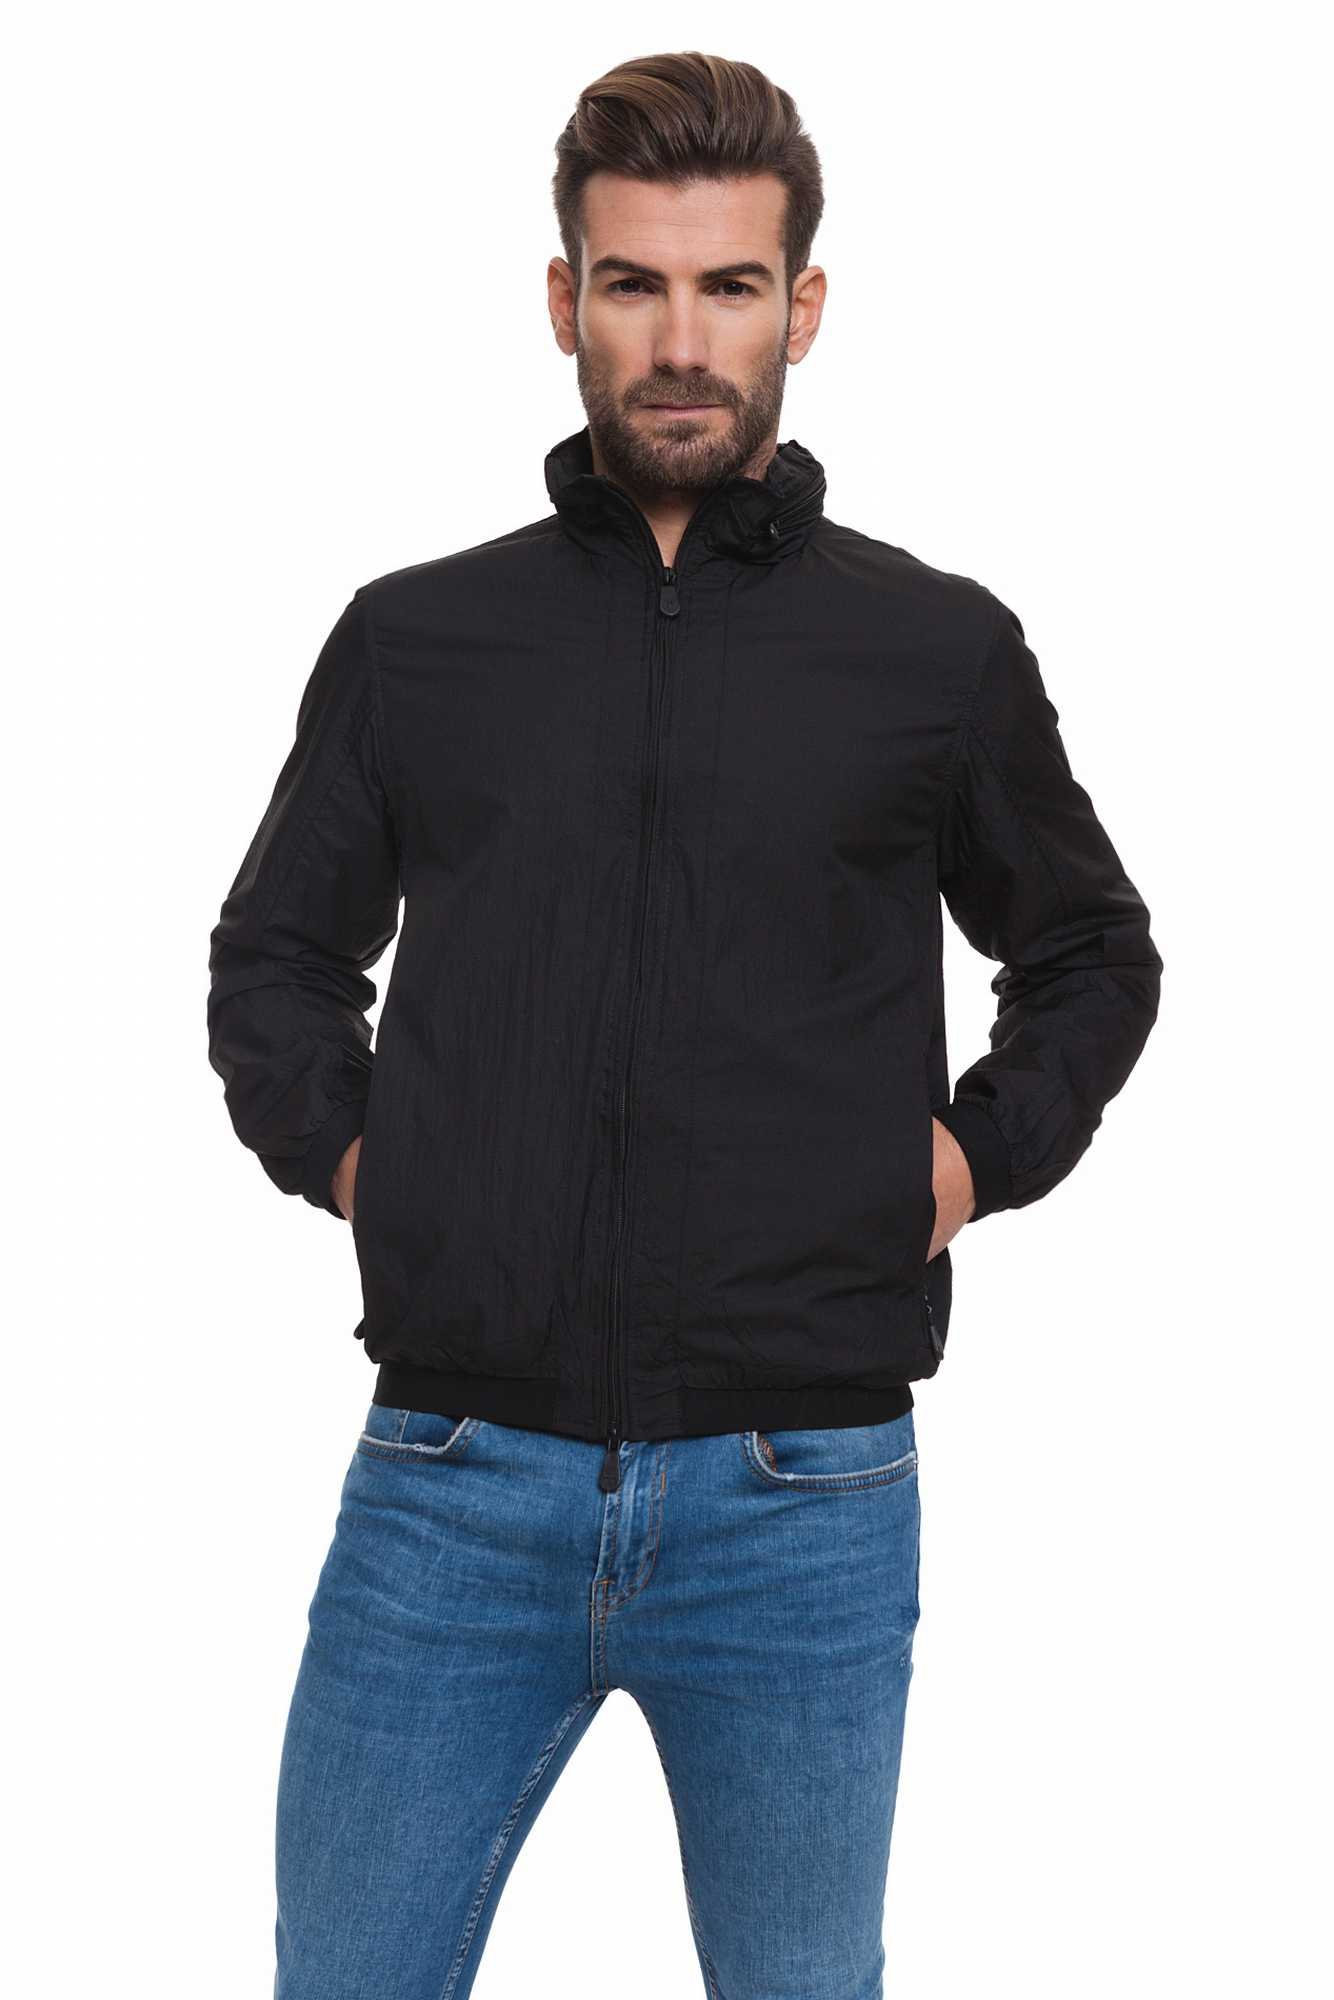 Born Rich Jacket For Men Brazier With Hoodie And Black Color Zipper Length Causal BR2K111095AA2BRC-2